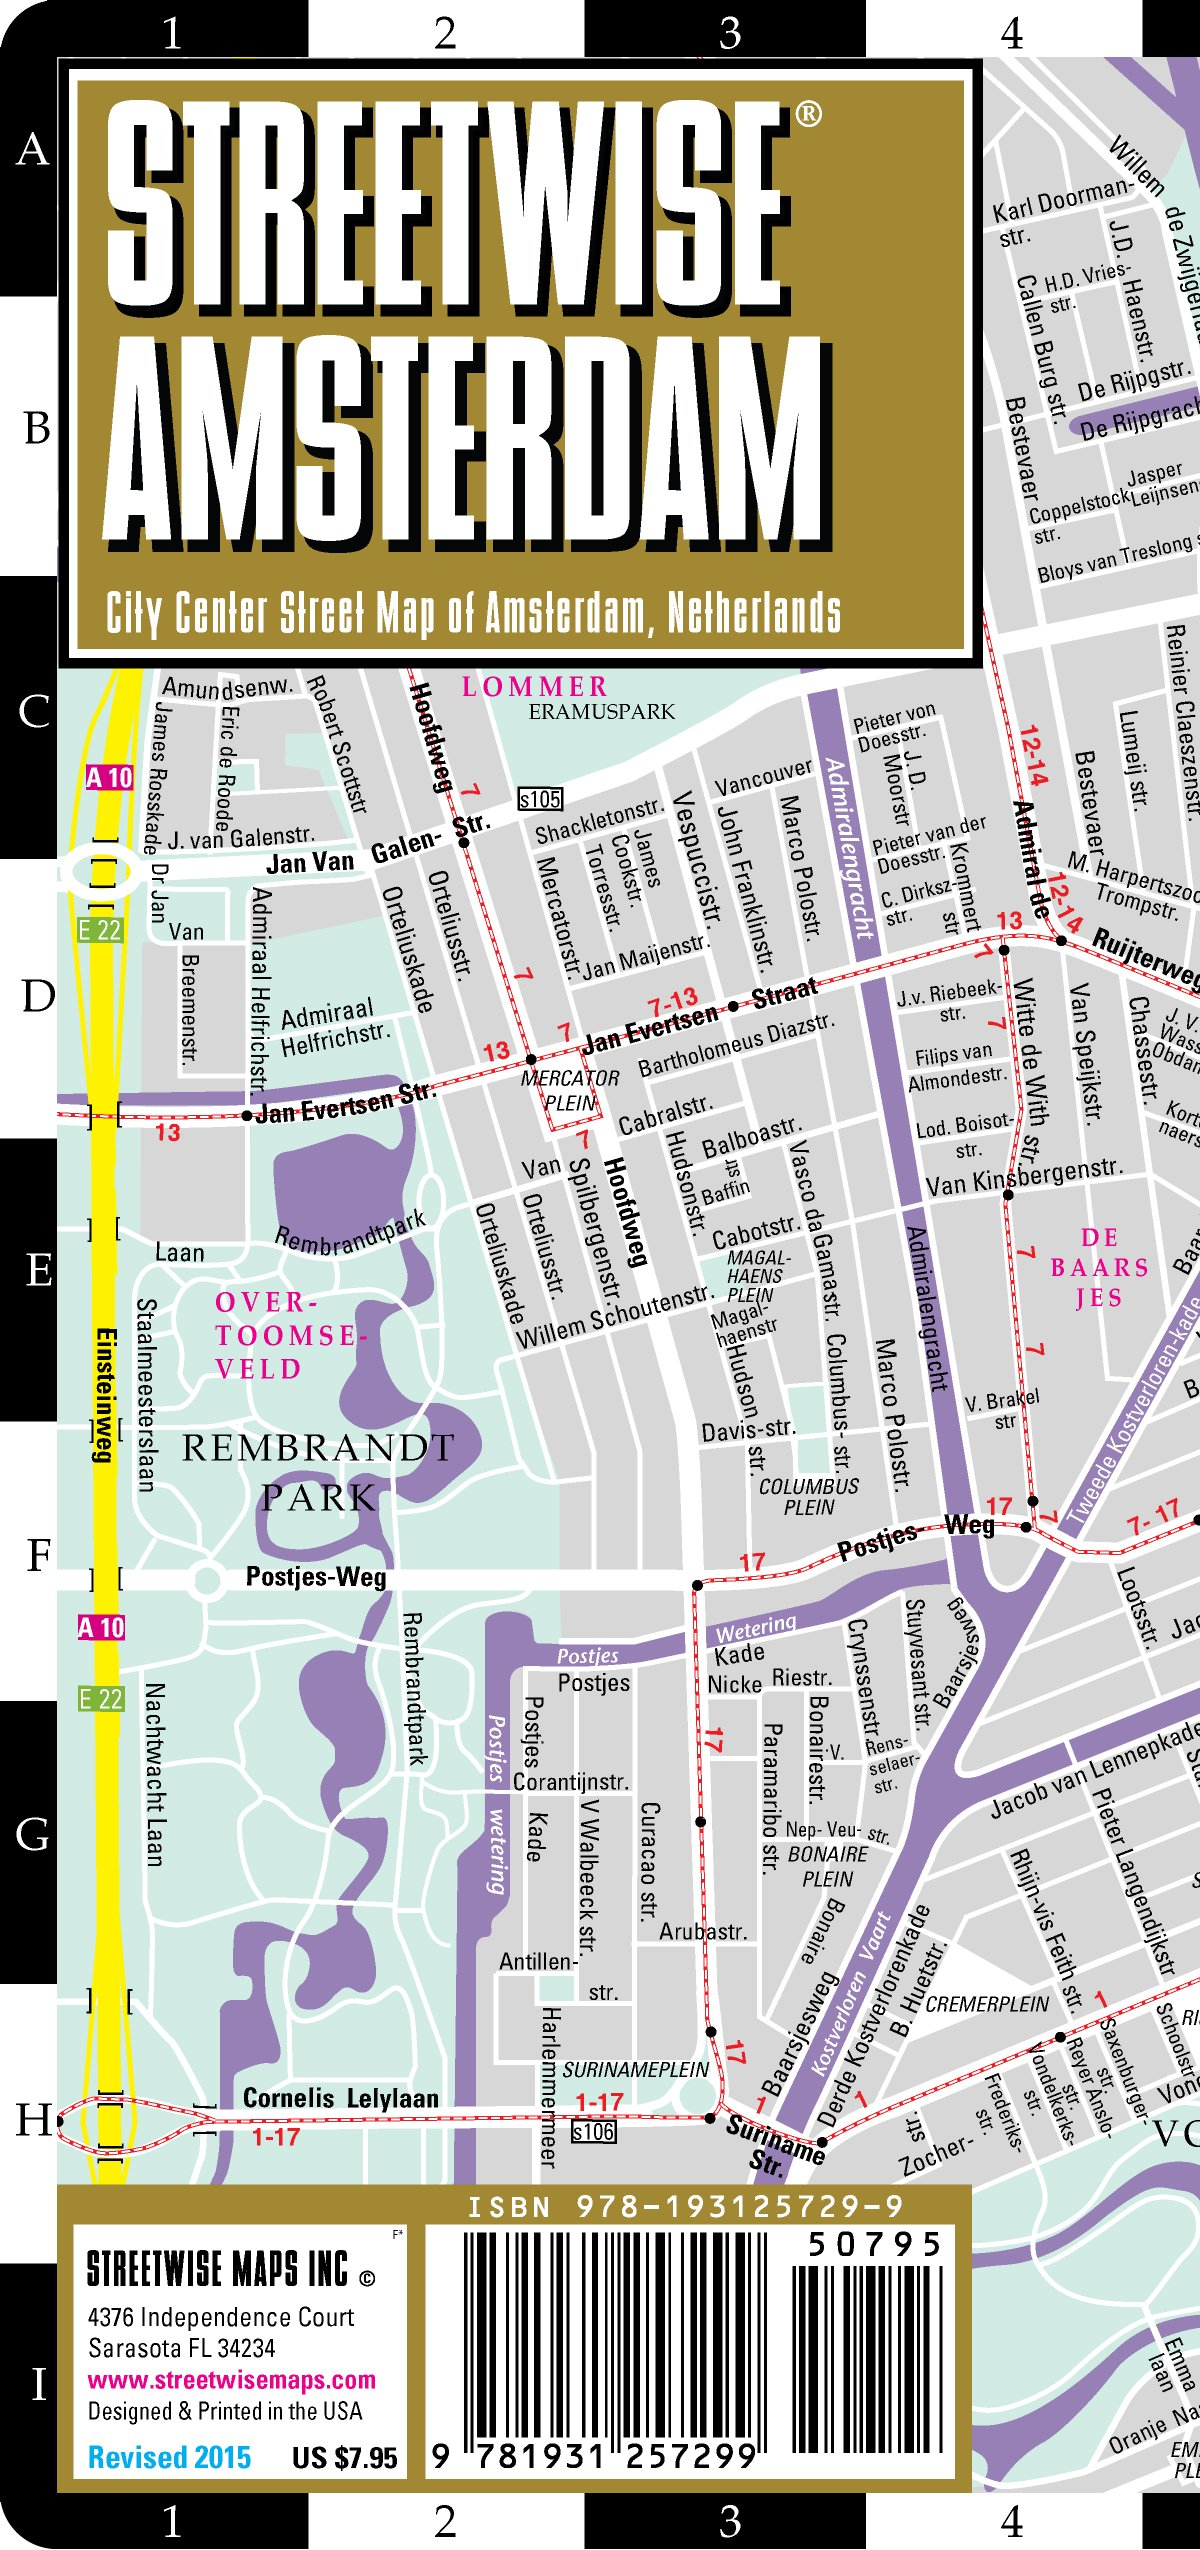 Streetwise Amsterdam Map - Laminated City Center Street Map